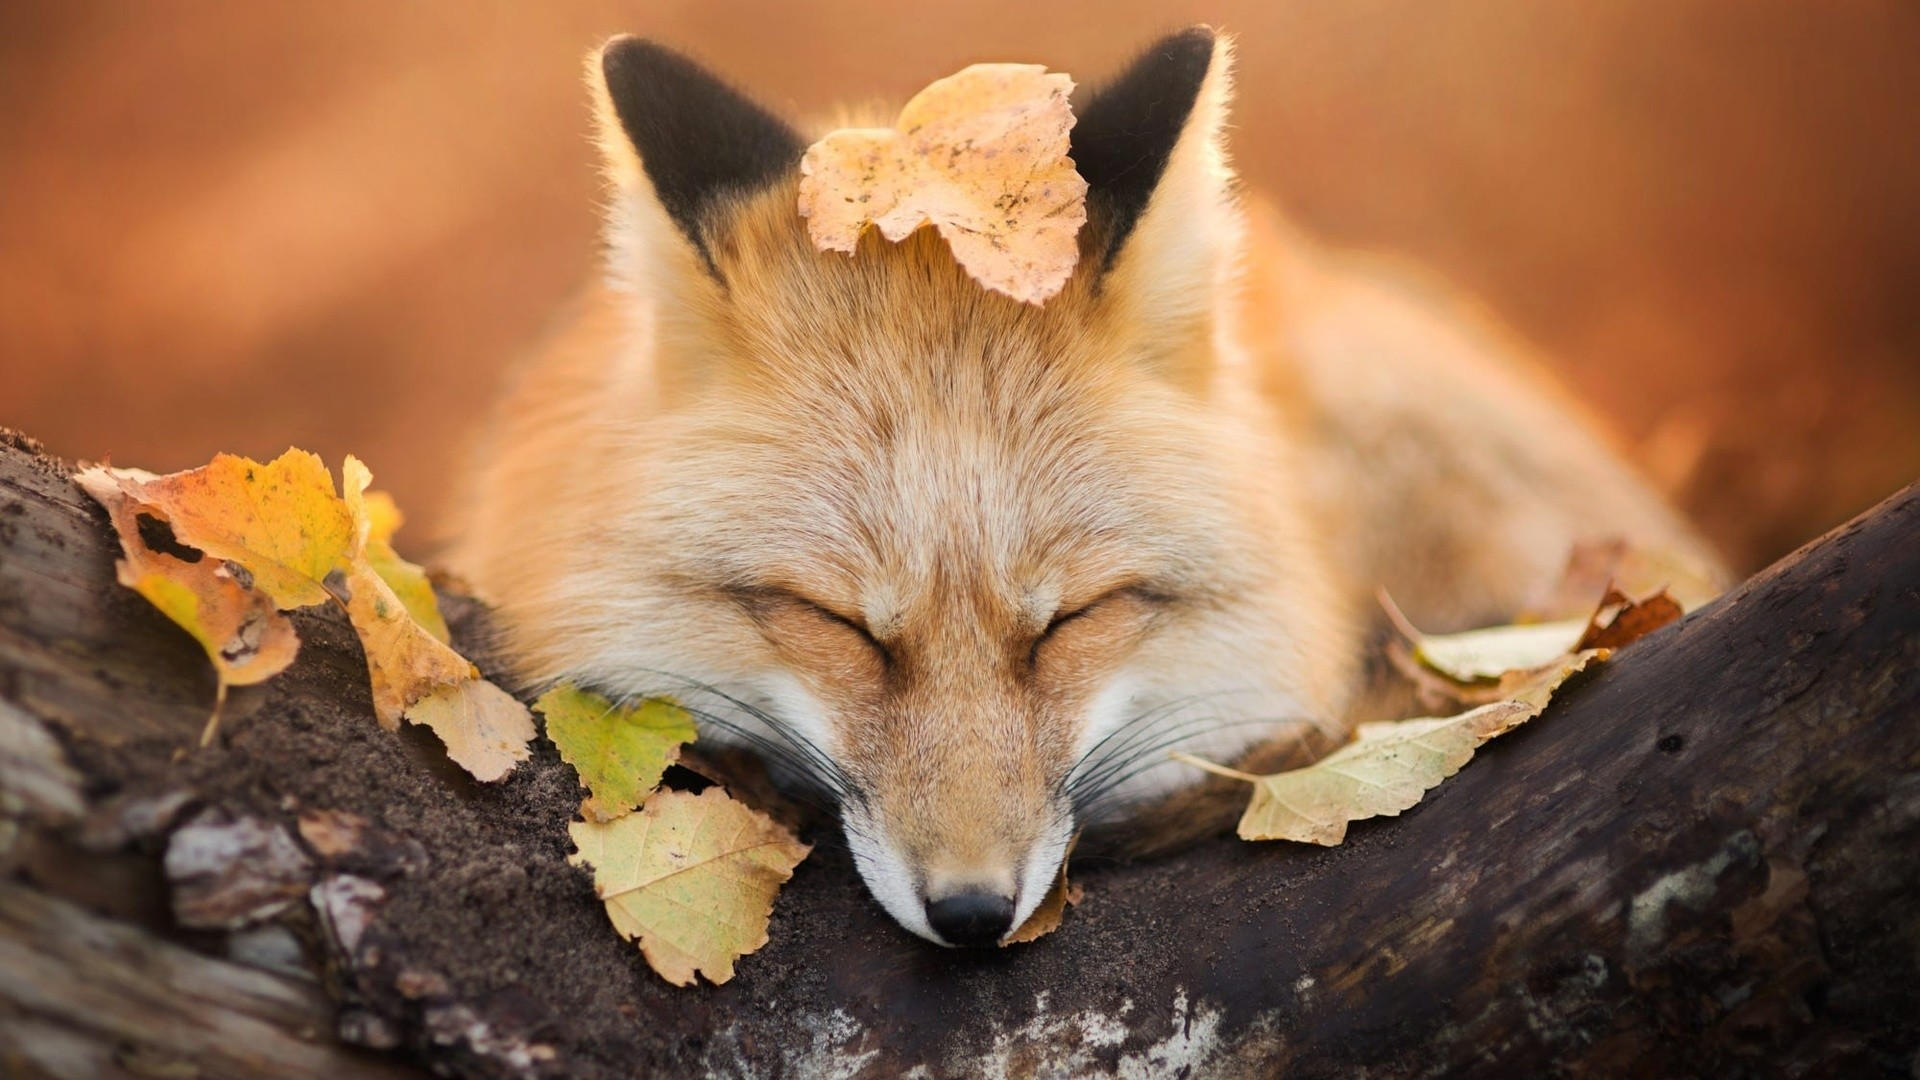 Res: 1920x1080, General  nature animals fox trees leaves fall depth of field  sleeping muzzles photography